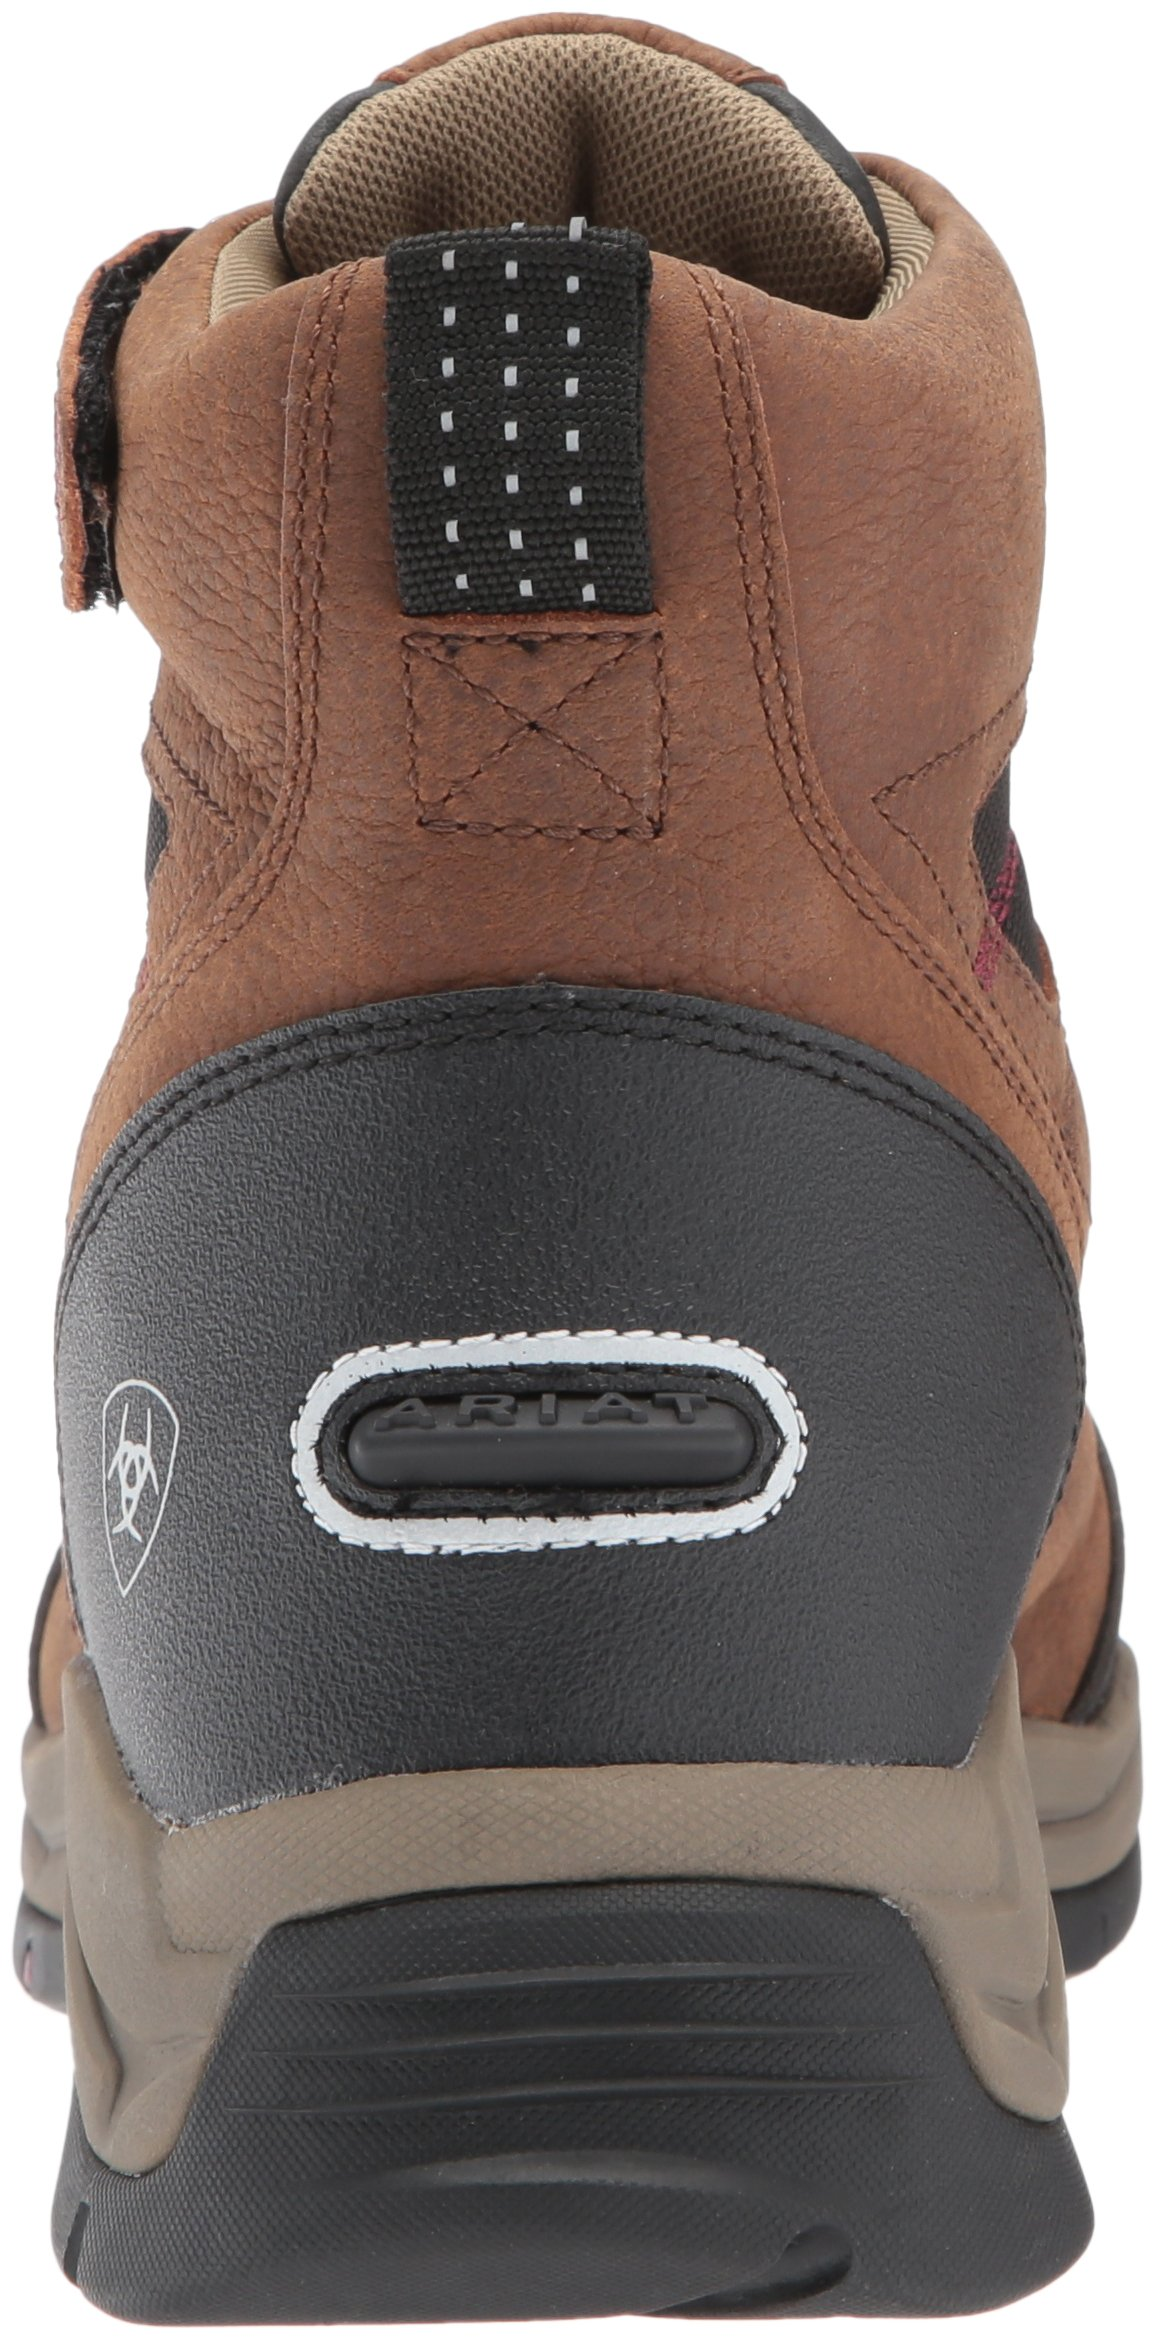 Ariat Women's Terrain Pro Zip H2O Work Boot, Brown, 7 B US by Ariat (Image #2)